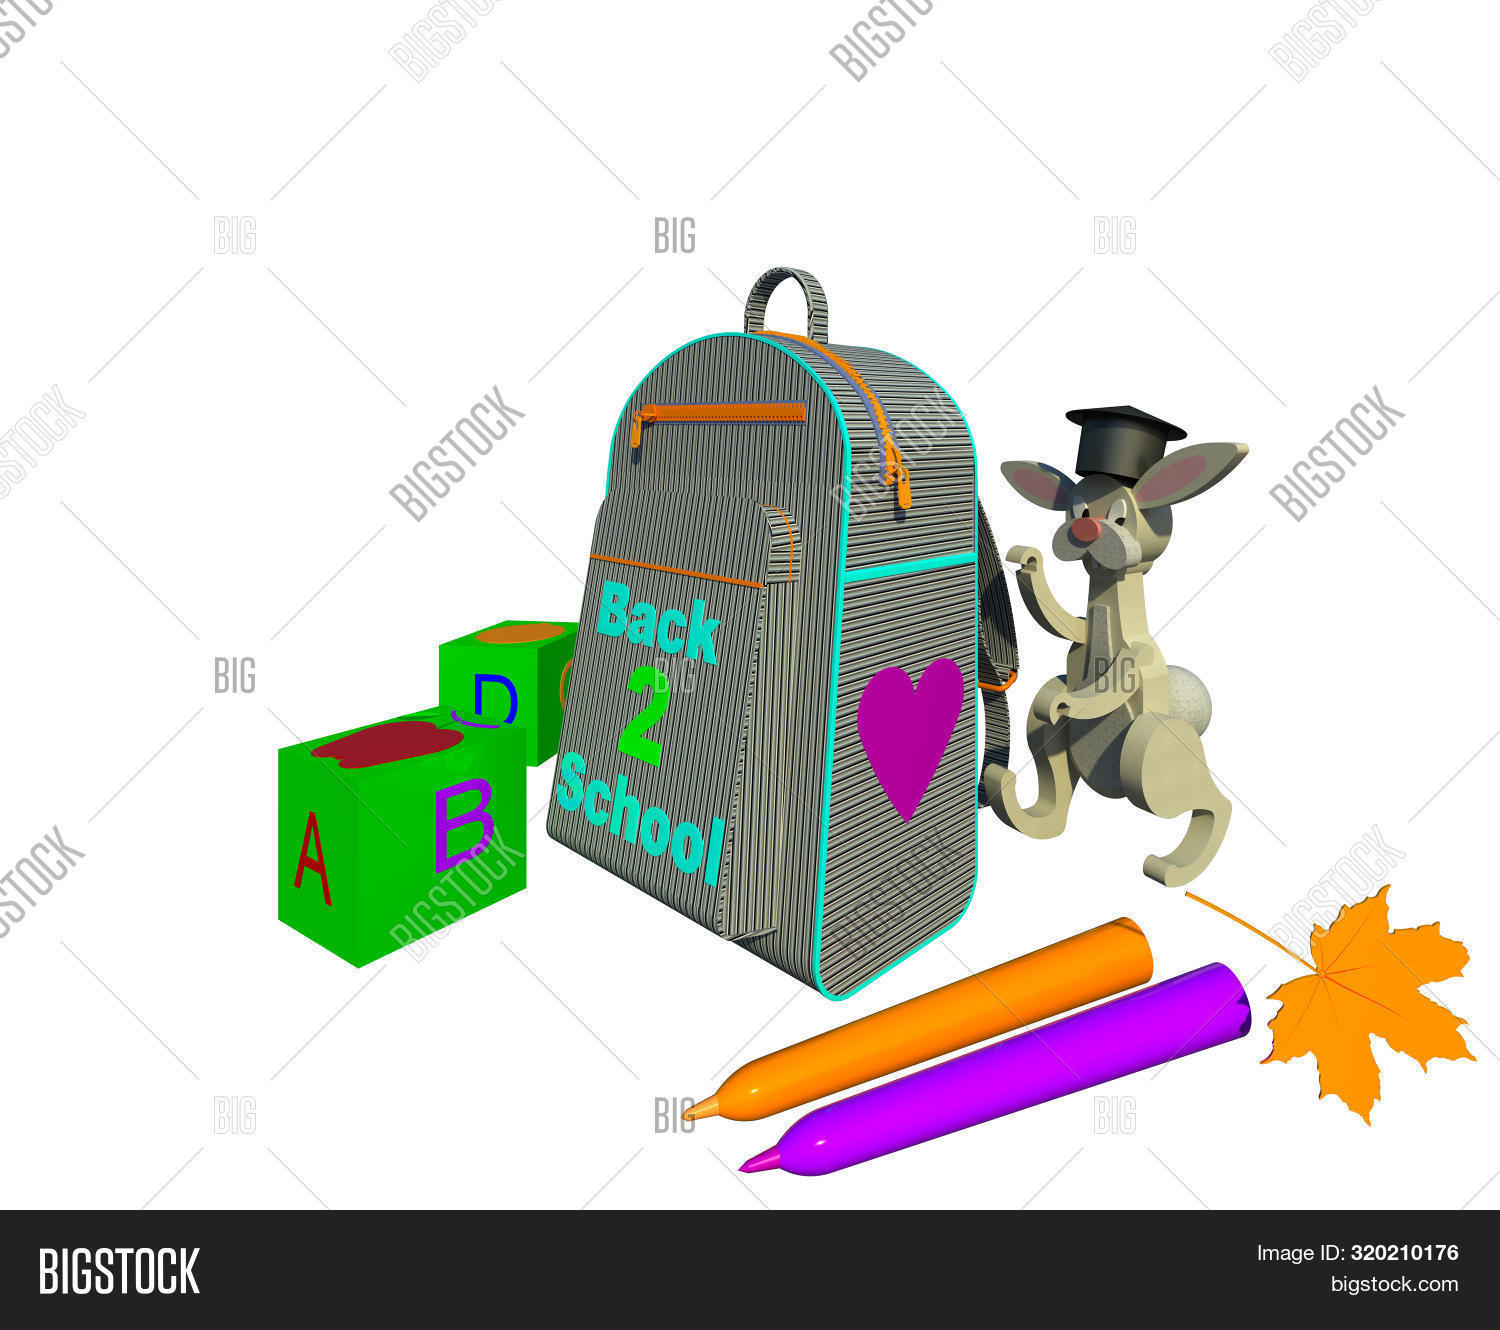 3d,autumn,background,backpack,bag,blocks,bunny,character,collection,color,colorful,computer,cubes,digitally,dimensional,generated,graphic,hat,illustration,image,isolated,leaf,letters,markers,rendering,scholar,school,season,seasonal,shadows,shapes,student,surfaces,symbols,text,textures,three,toy,white